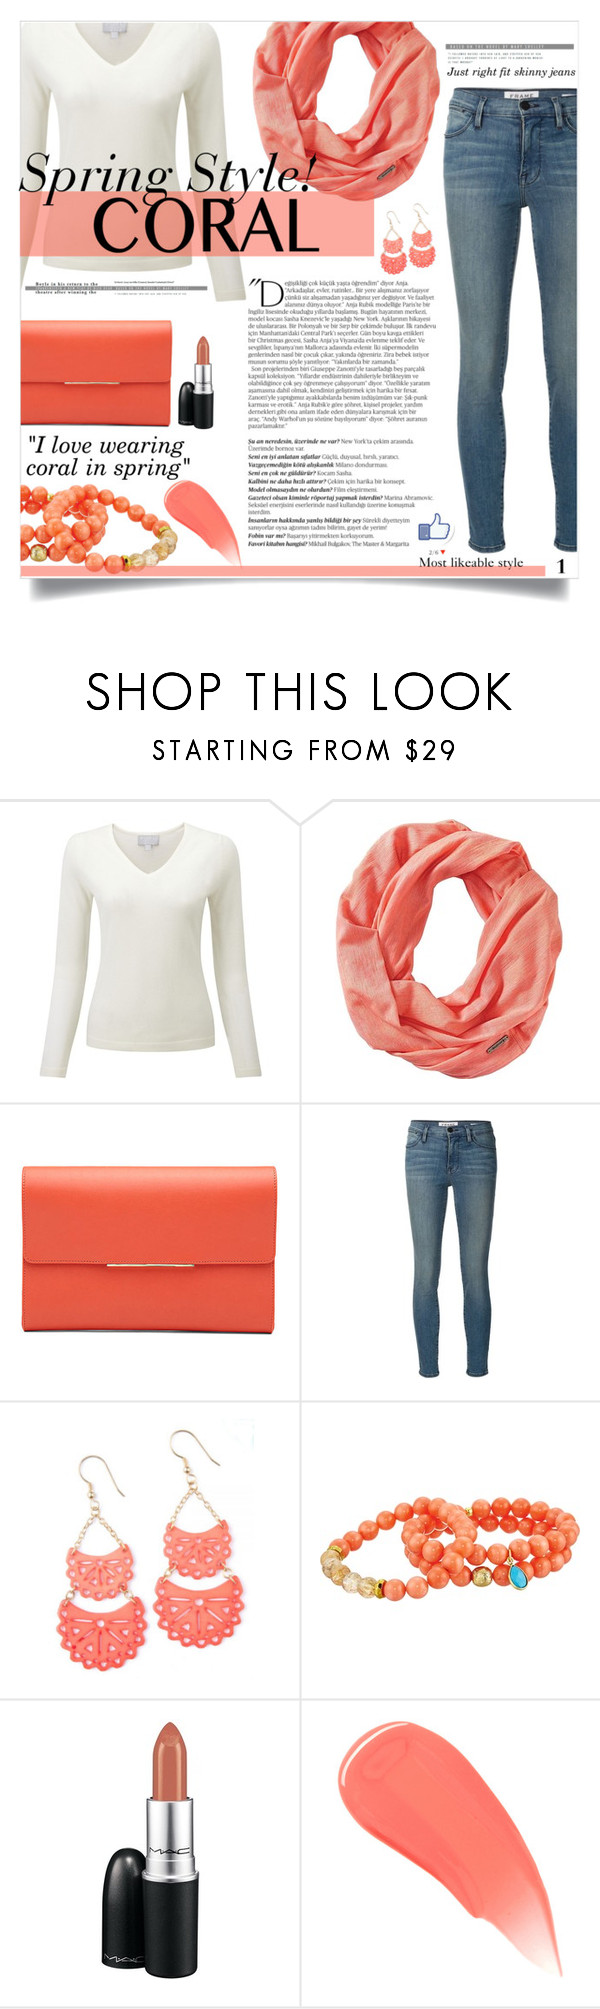 """""""Coral spring lovin."""" by ambacasa ❤ liked on Polyvore featuring beauty, Smartwool, Frame Denim, Dee Berkley, MAC Cosmetics, Balmain and Burberry"""